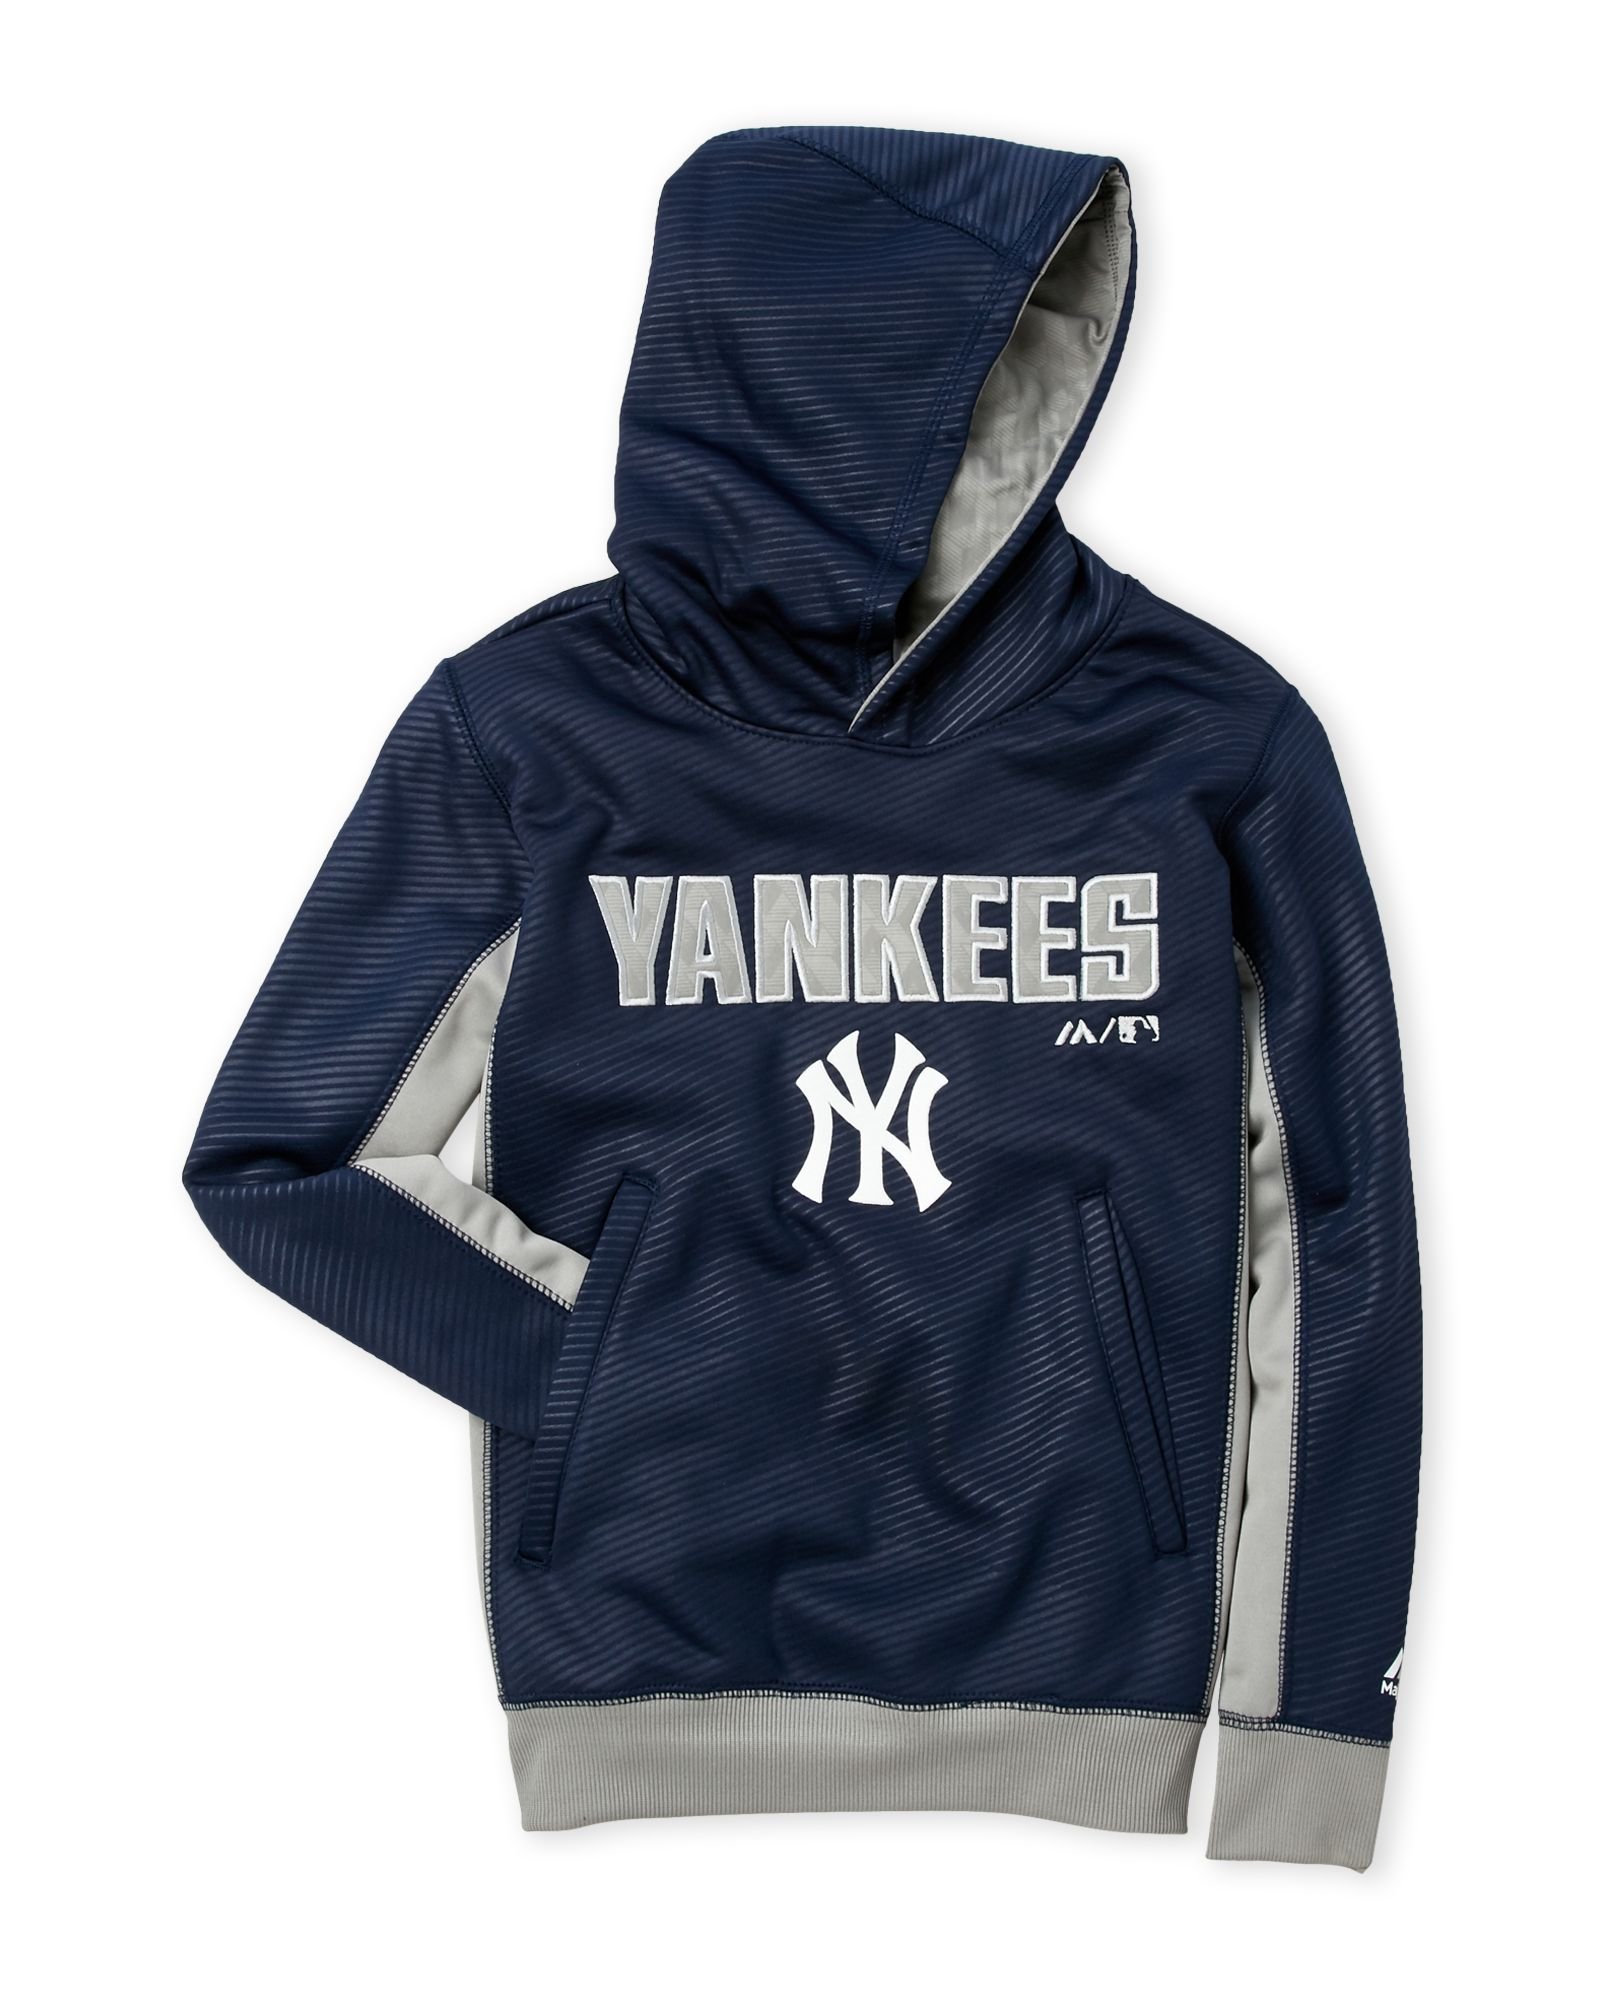 wholesale dealer 8e291 2be42 Majestic (Boys 8-20) New York Yankees Hoodie | *Apparel ...